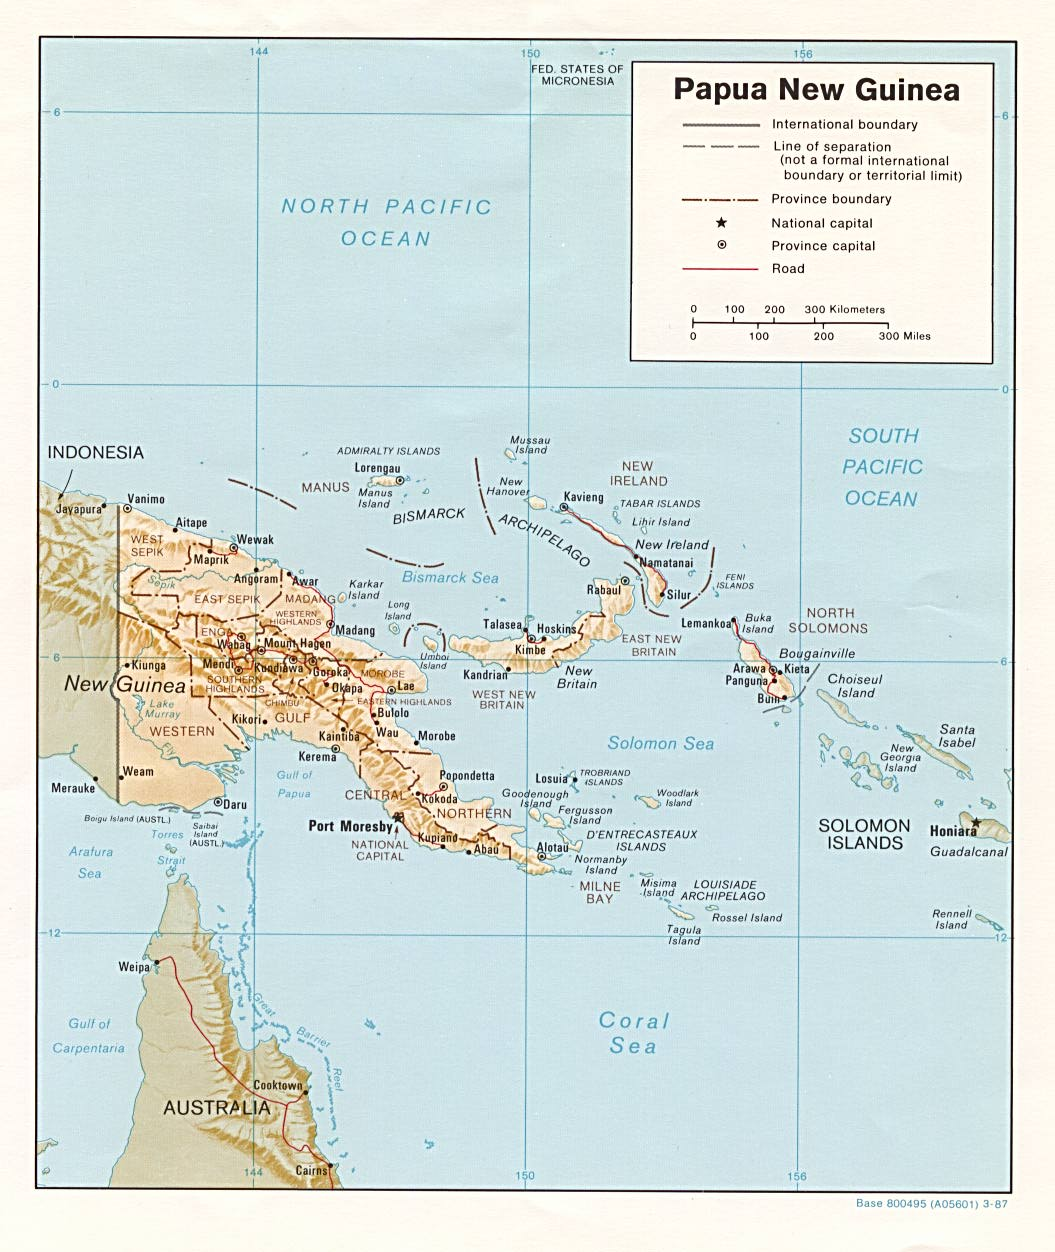 Papua New Guinea Maps - Perry-Castañeda Map Collection - UT Library